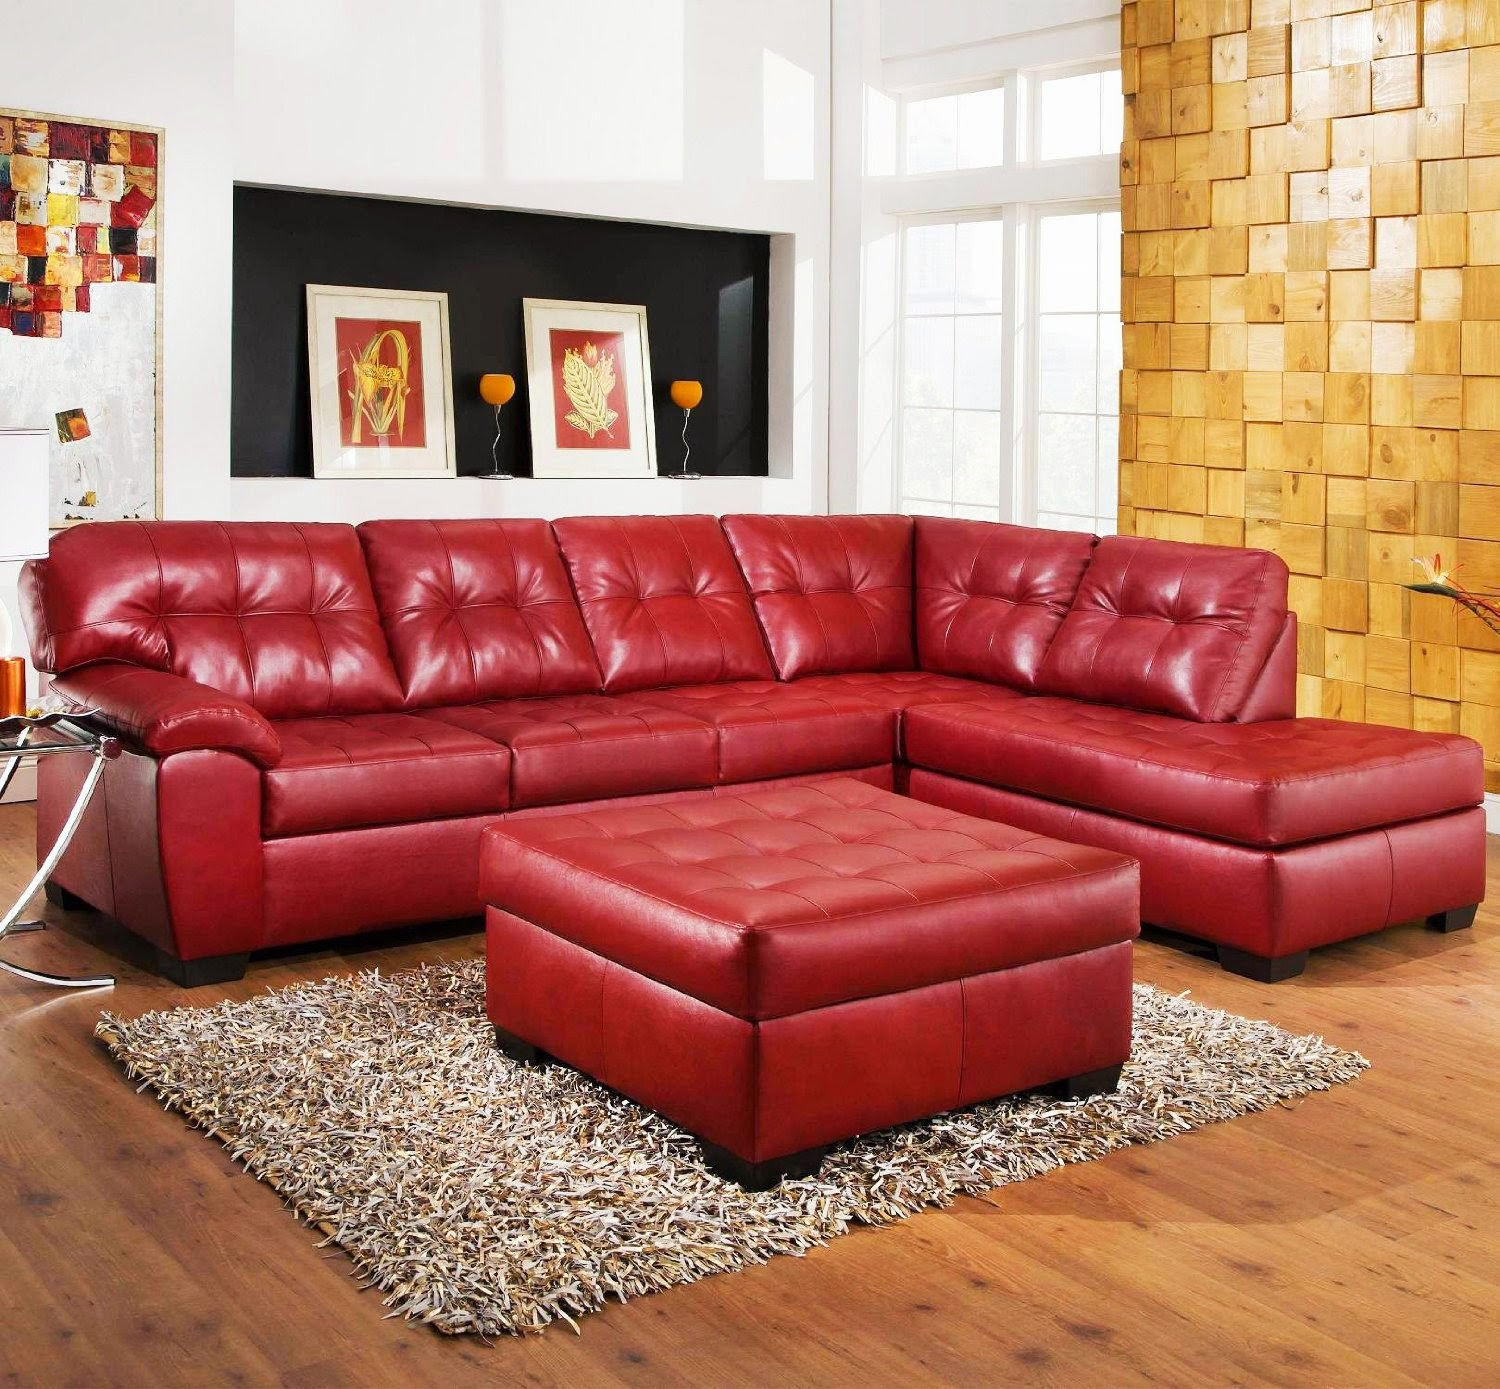 3-Piece Red Leather Sectional Sofa with Chaise and Ottoman Set - Red Couch: Red Leather Sectional Couch